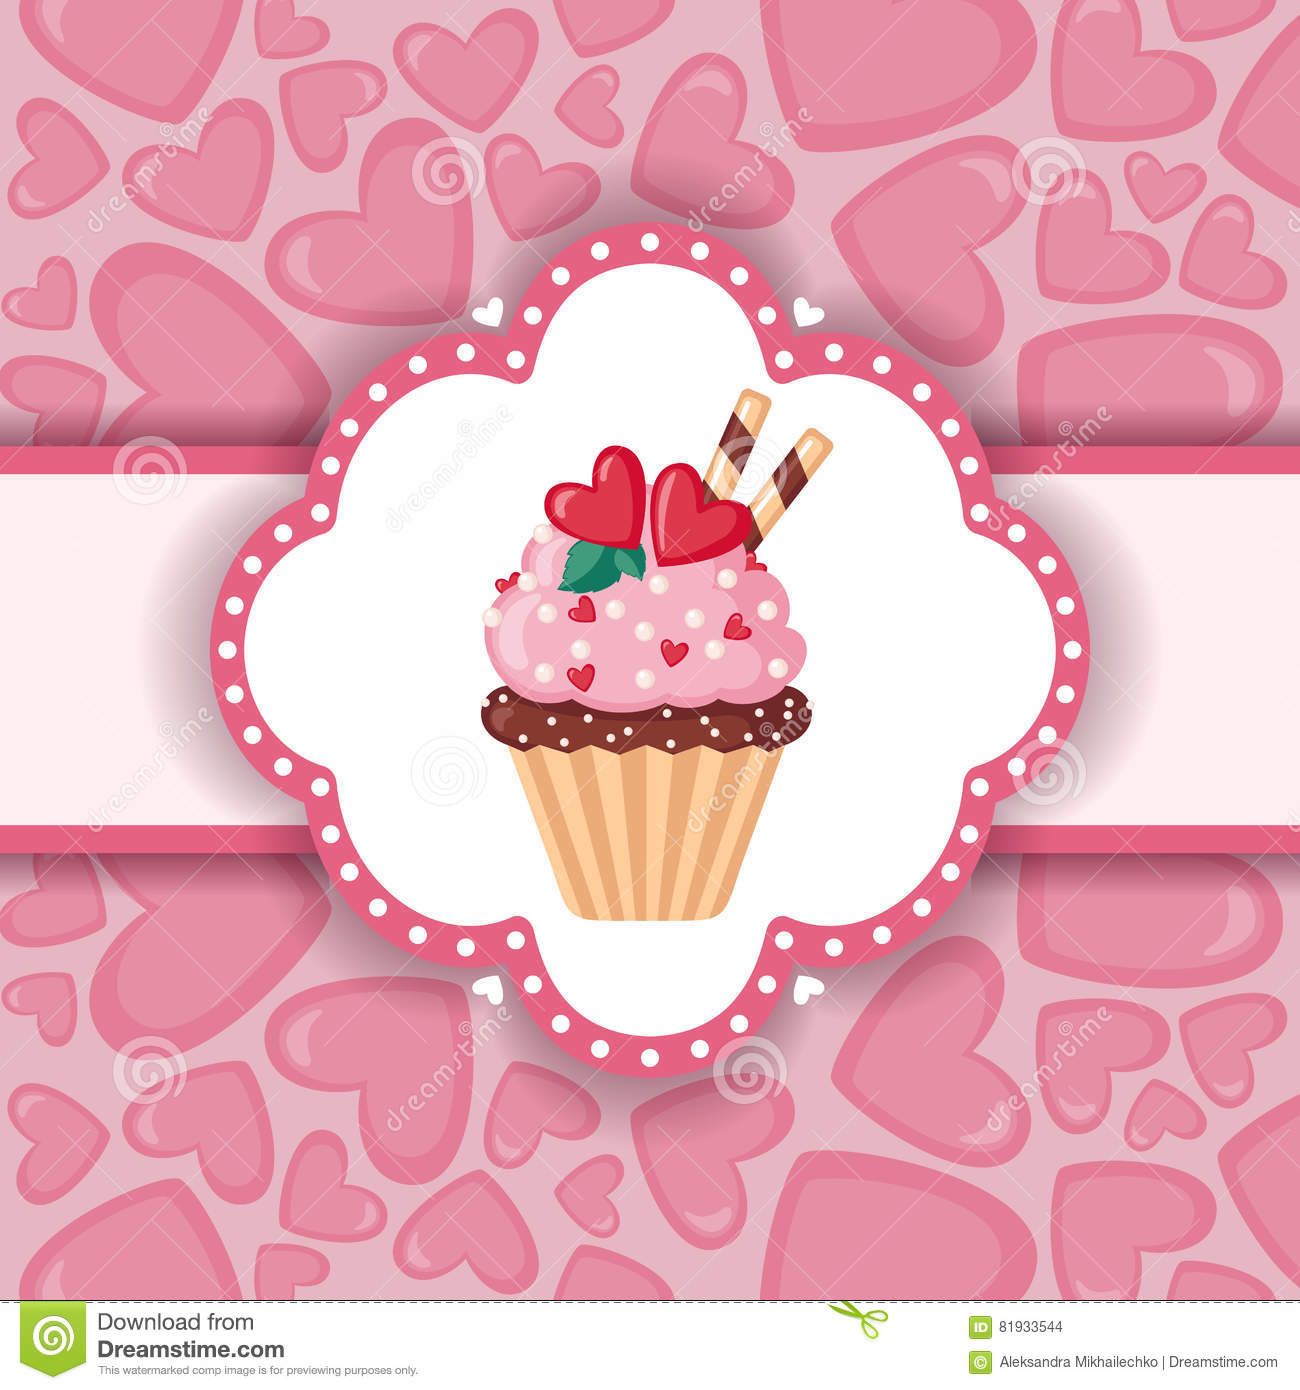 cute background with cupcake and hearts stock vector illustration of flat background 81933544 dreamstime com